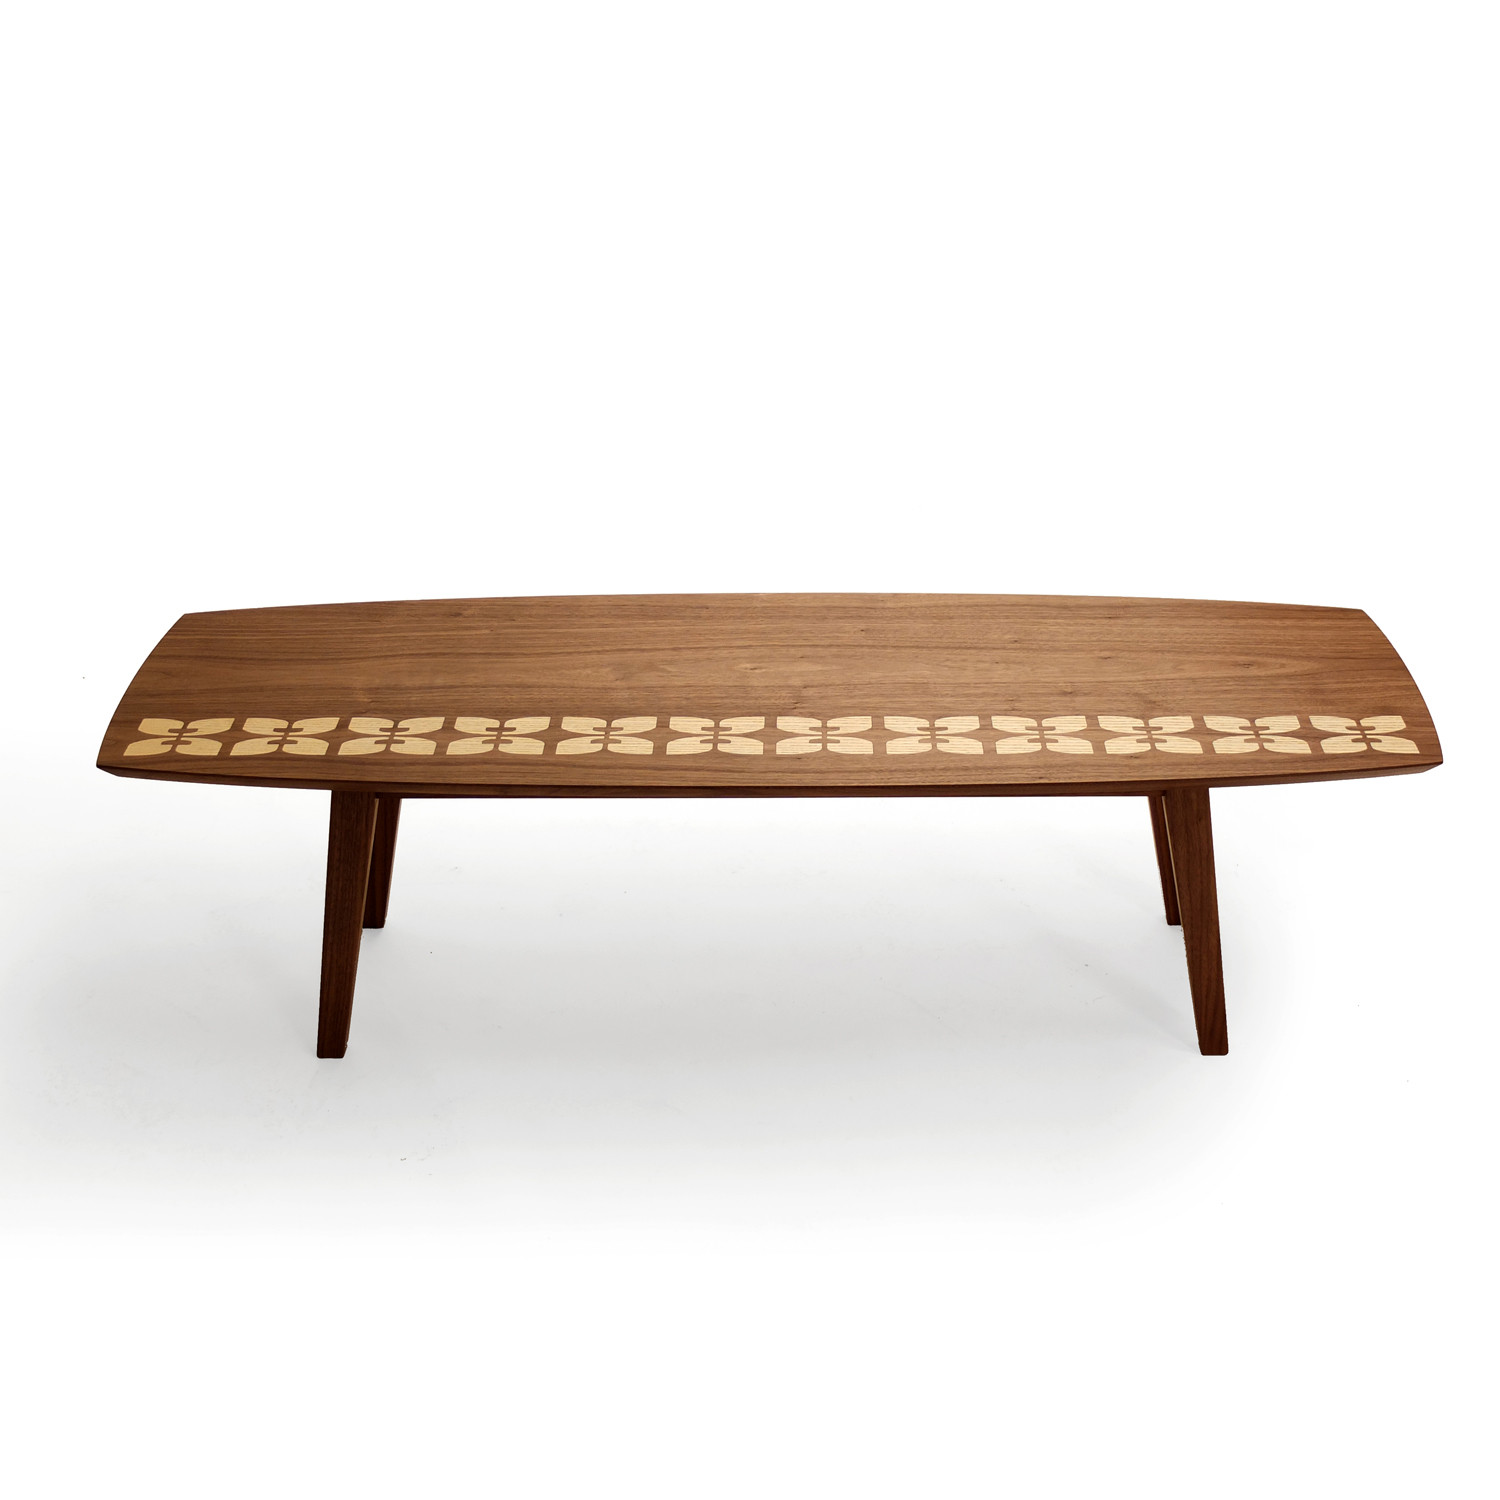 Beacon Rectangular Wooden Coffee Table